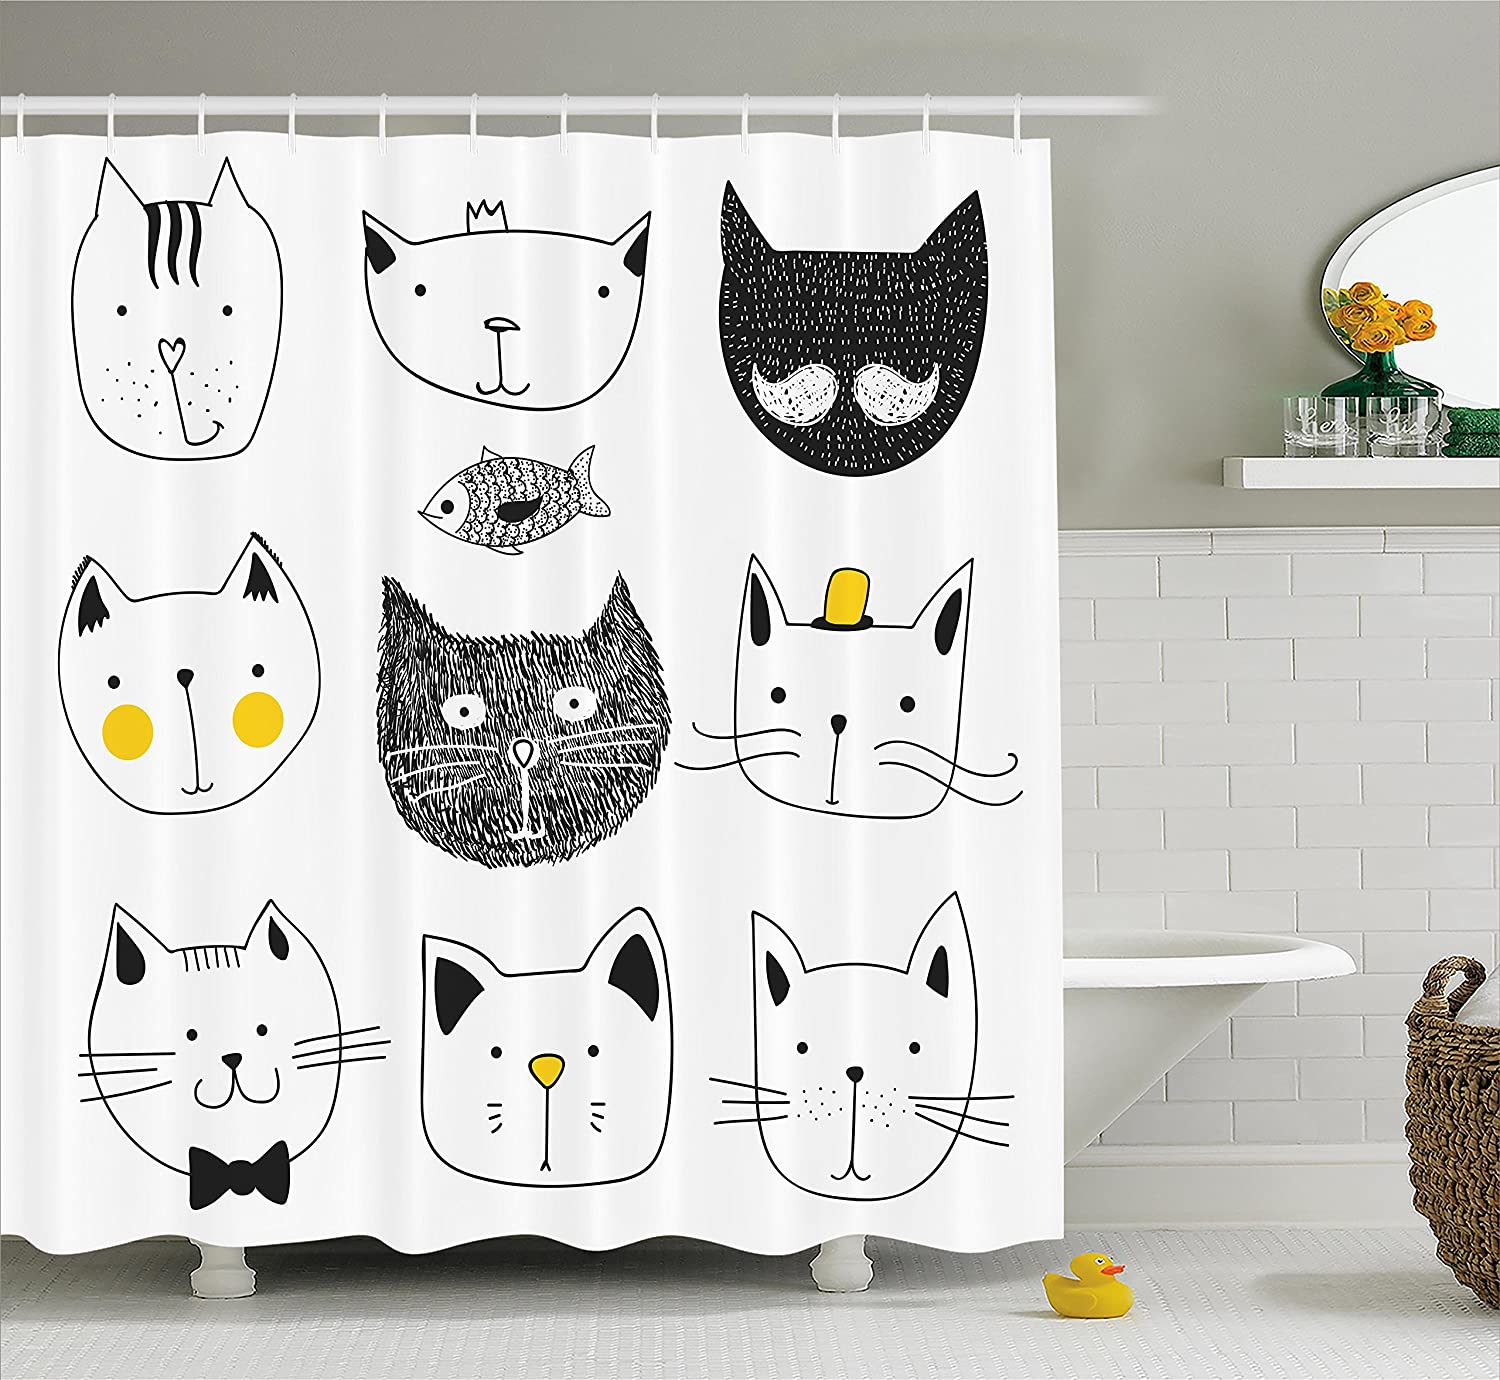 Ambesonne Cat Shower Curtain Stylish Cats With Moustache Bow Tie Hat Crown Fluffy And Fish Humor Faces Graphic Fabric Bathroom Decor Set Hooks